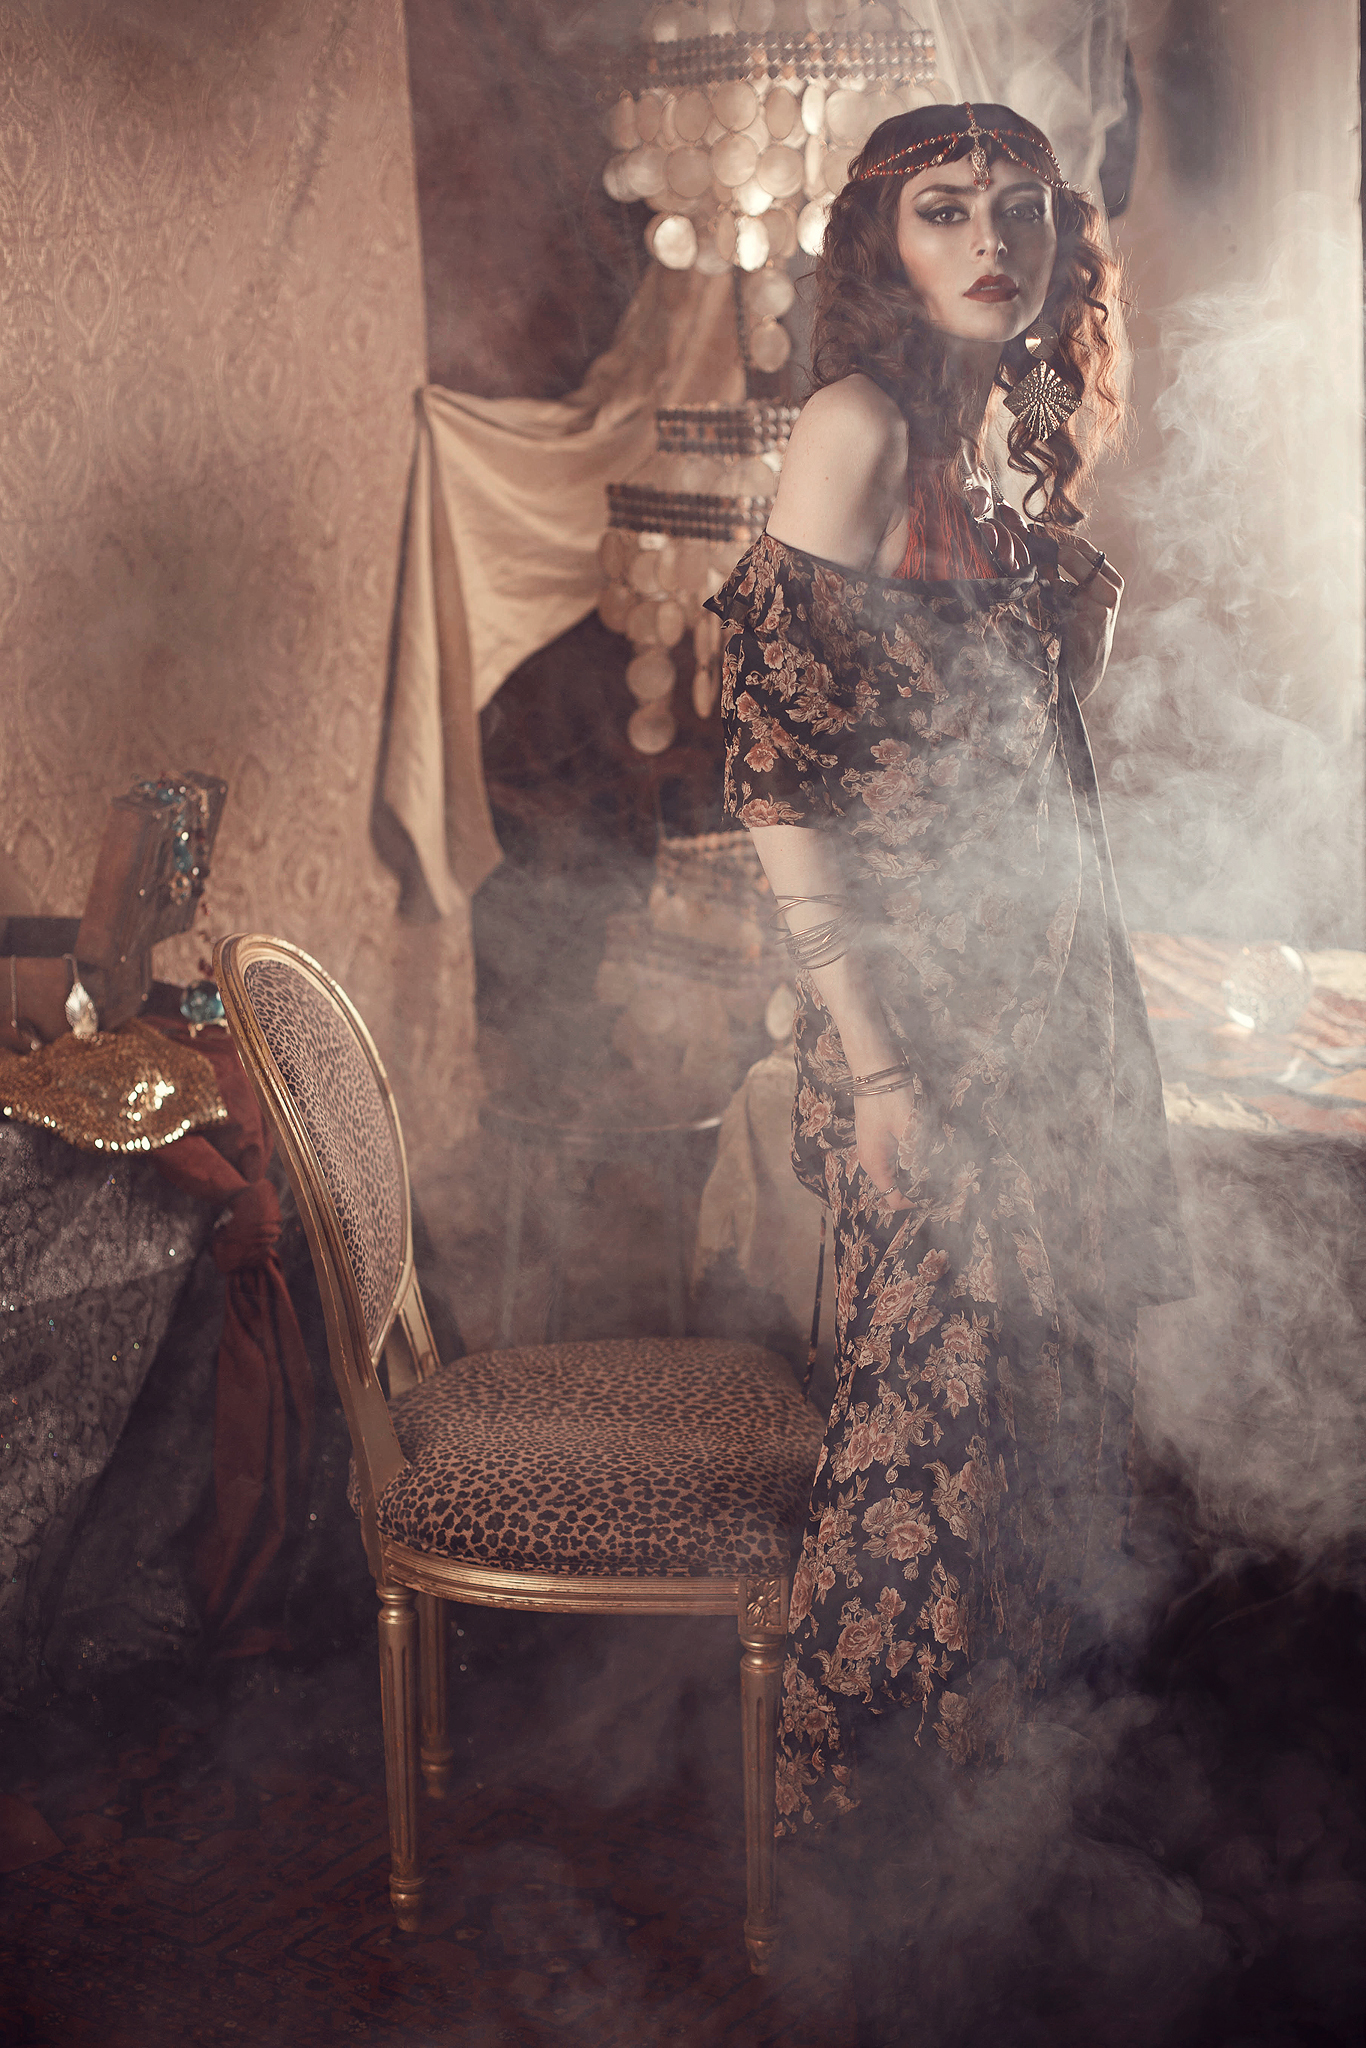 Cincinnati-Dayton-Conceptual-Fashion-Photography-Fortune-Teller-5.jpg